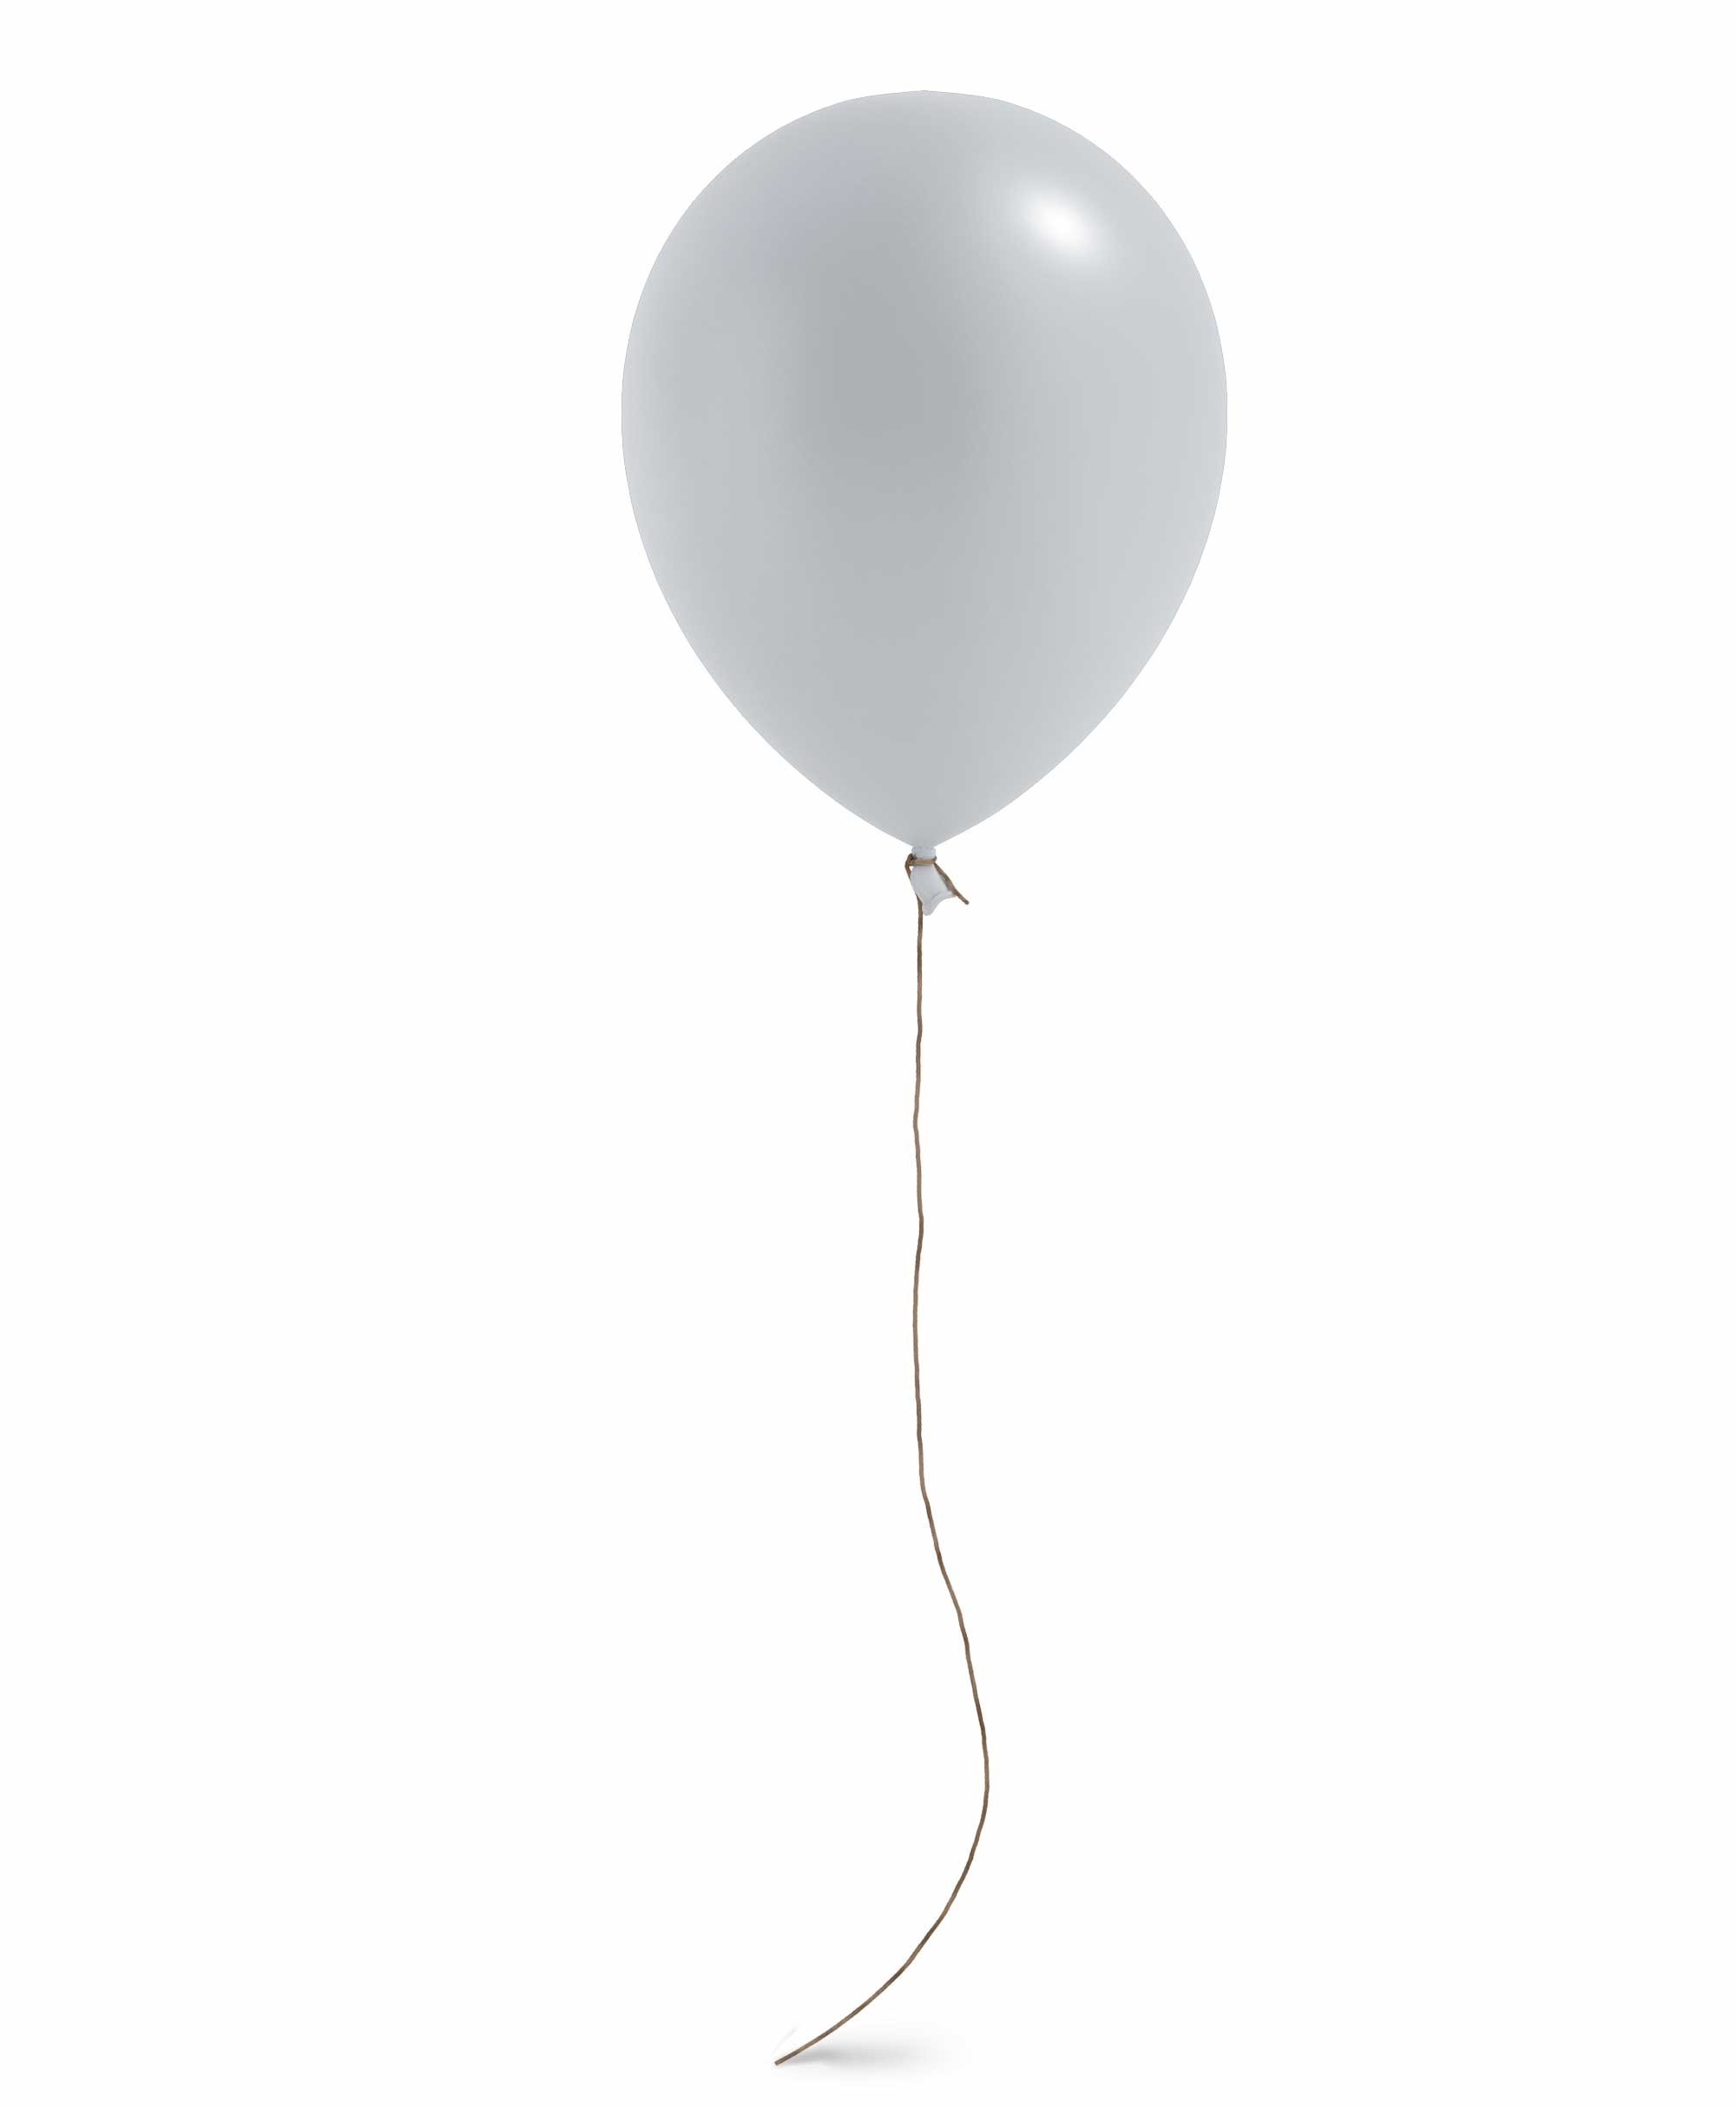 "Grey balloon 11"" - Gum nut Theme"